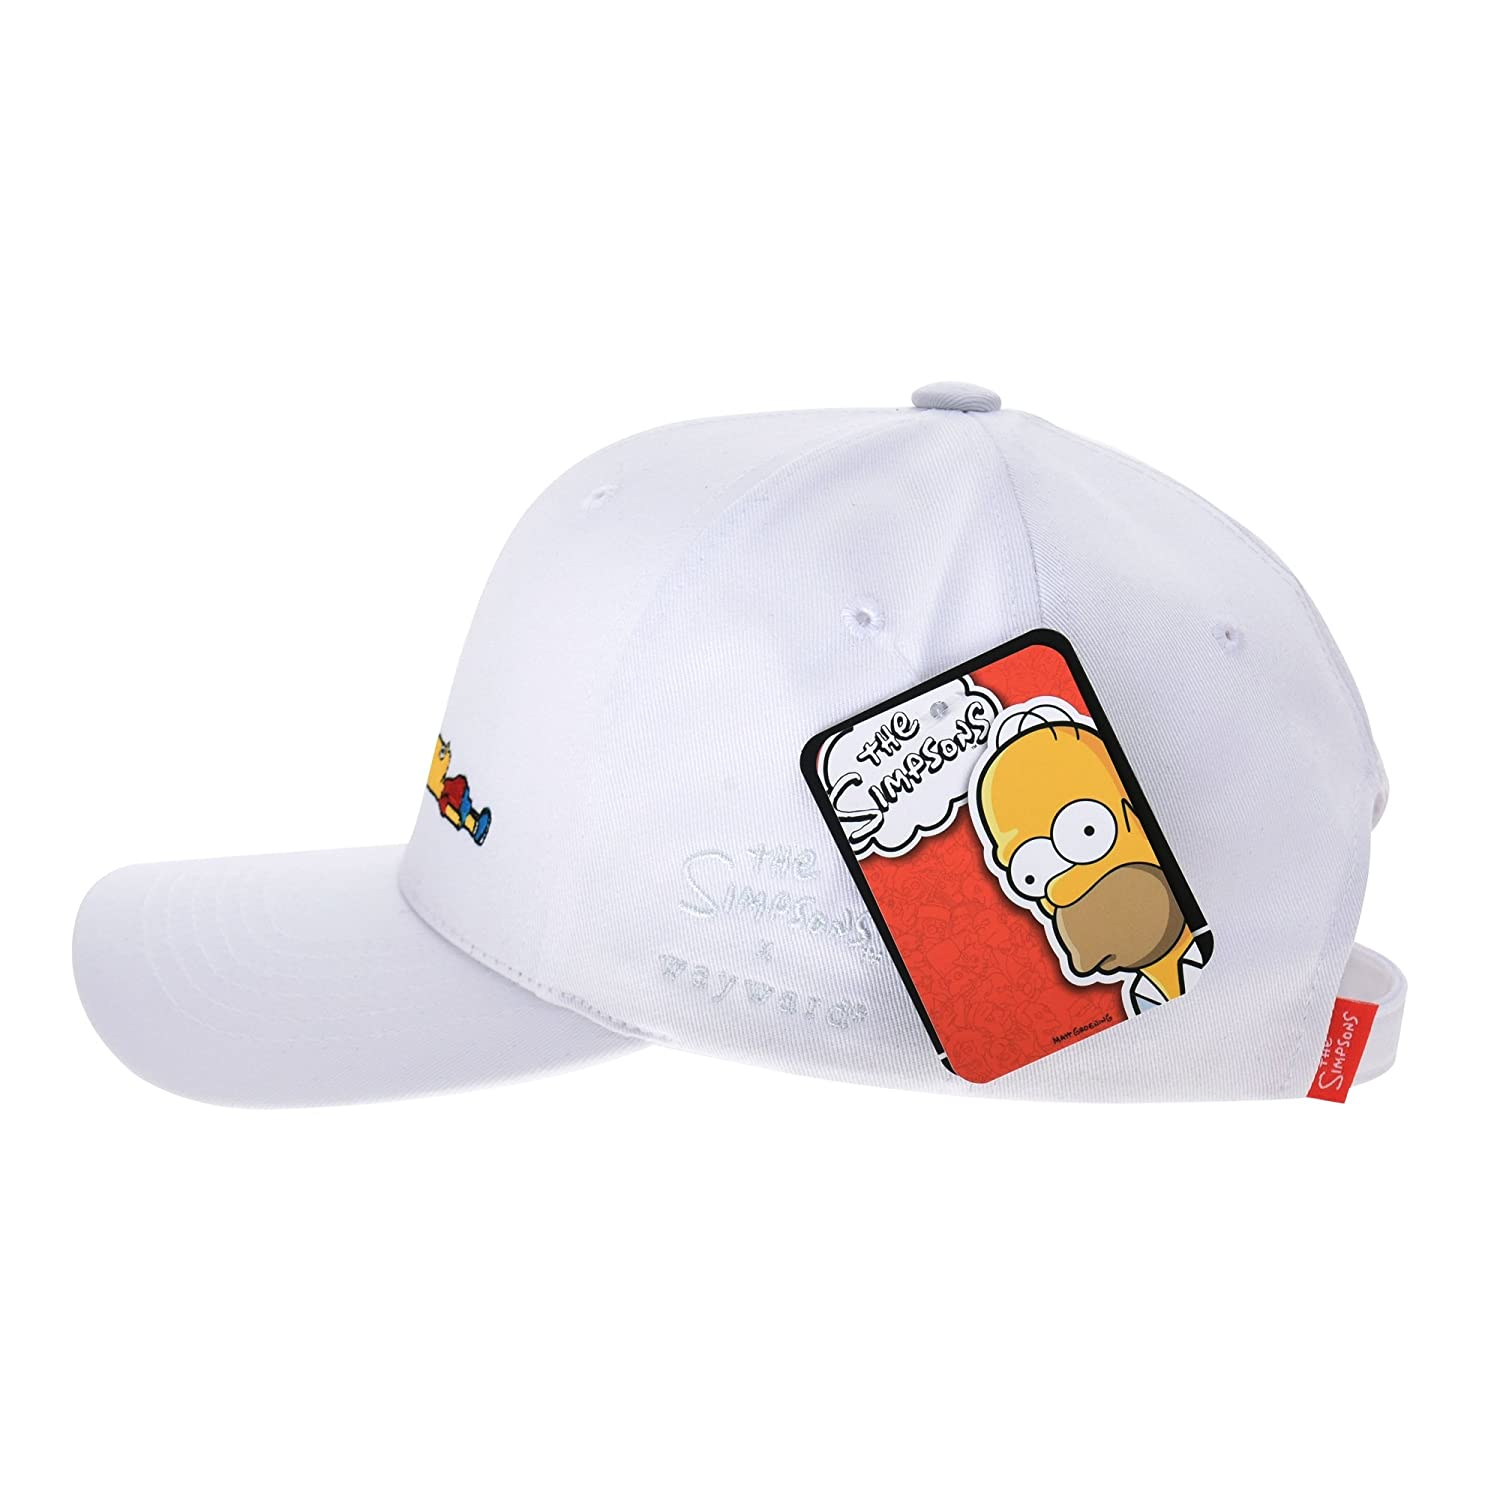 WITHMOONS The Simpsons Ball Cap Bart Simpson Lying Down Comics HL1716  (Black) at Amazon Men s Clothing store  425af52dc658